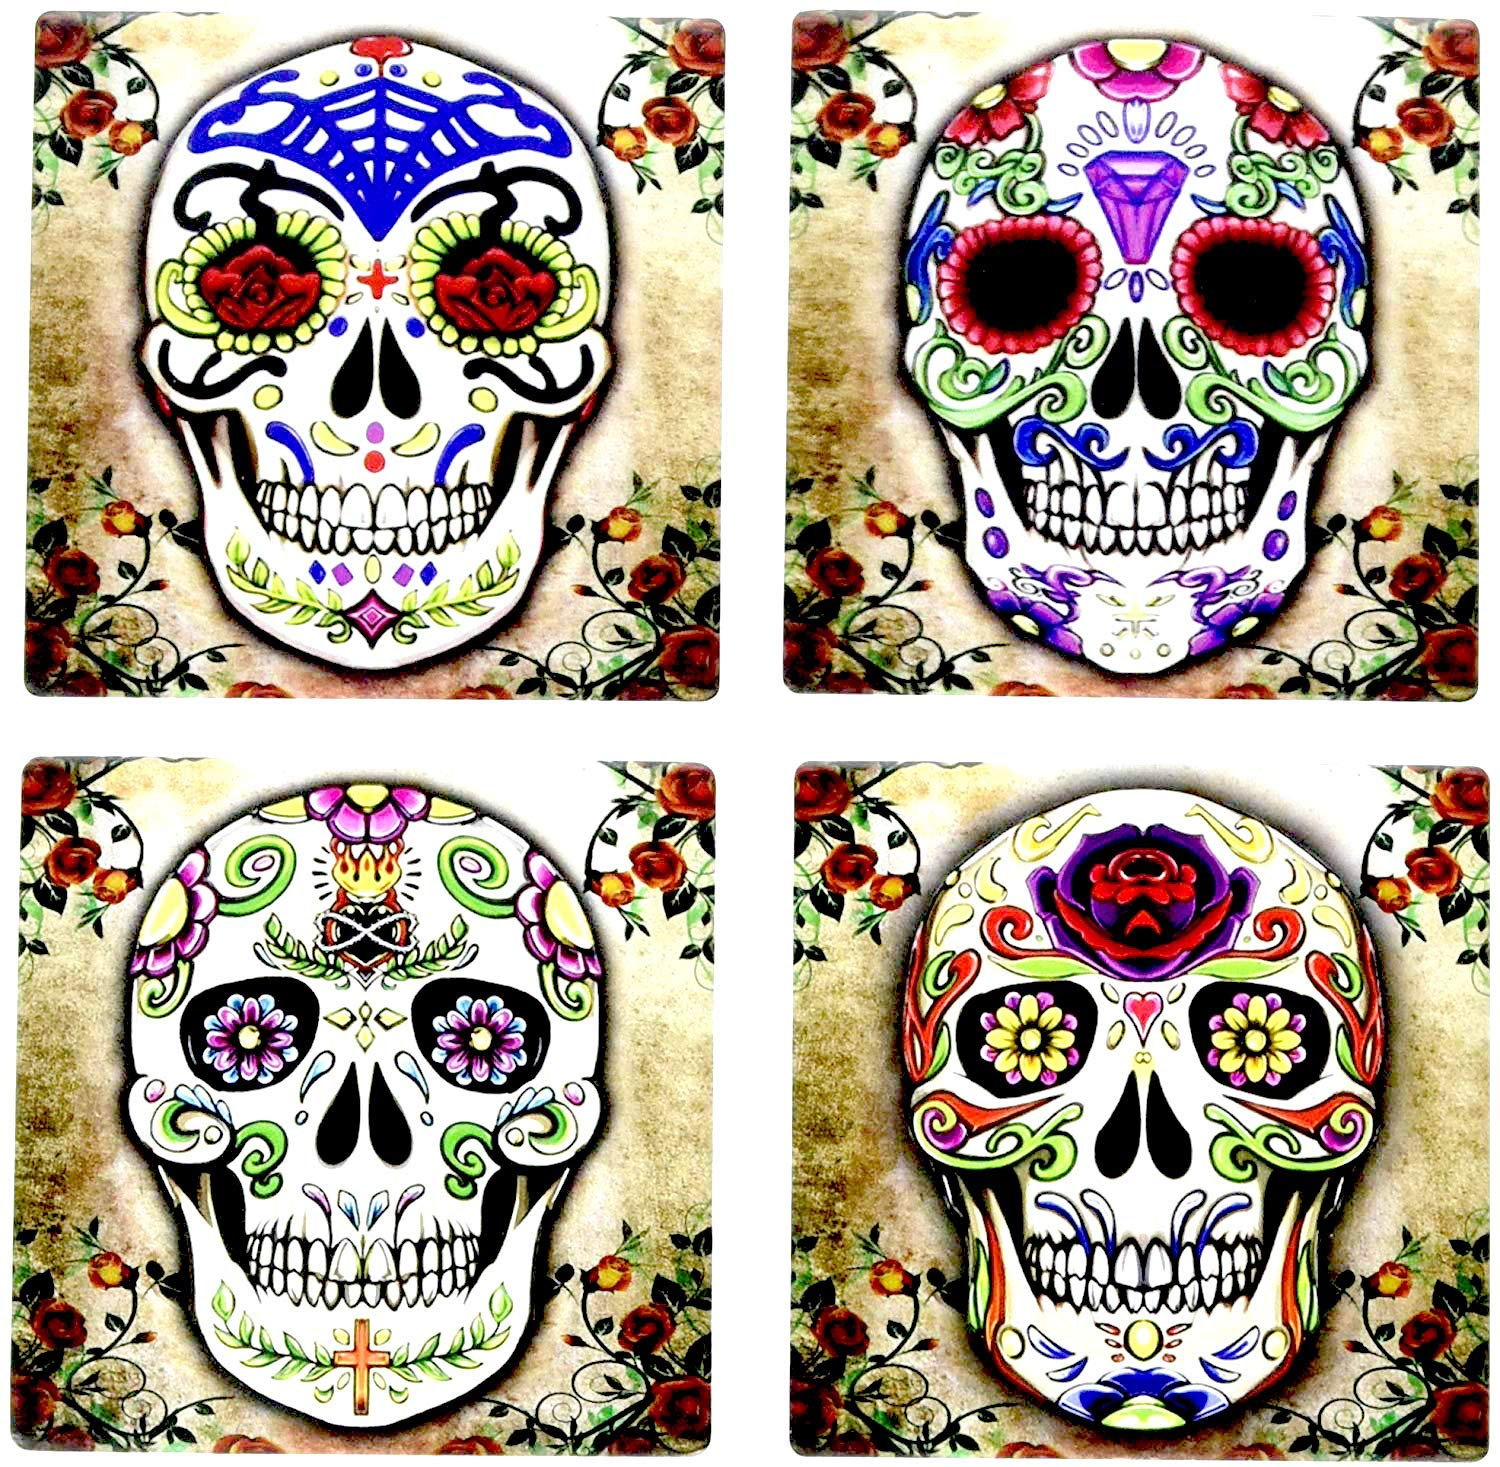 Day of the Dead Dia De Muertos - Sugar Skull Spirit 4 Inch by 4 Inch Ceramic Tile Coaster - Set of 4